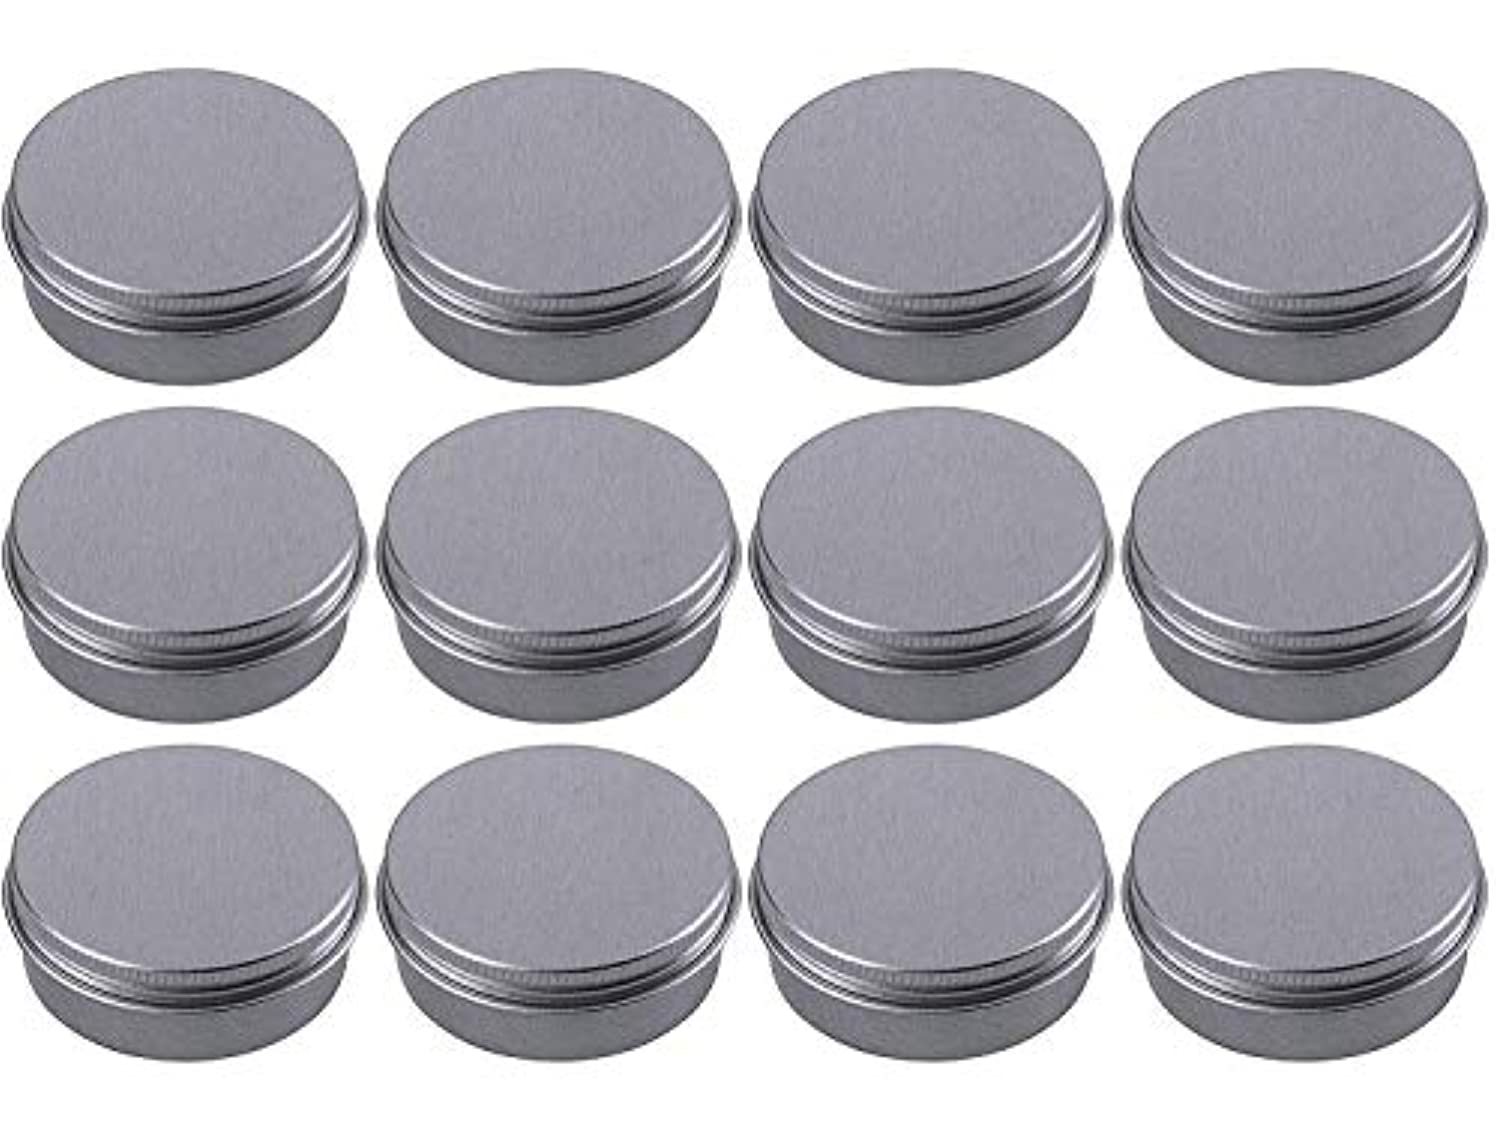 Hulless 2 oz Aluminum Tin Jars 60 ml Refillable Containers Cosmetic Small Tins Aluminum Screw Lid Round Tin Container Bottle for Candle, Lip Balm, Salve, Eye Shadow, Powder, Small Ounce 12 Pack.